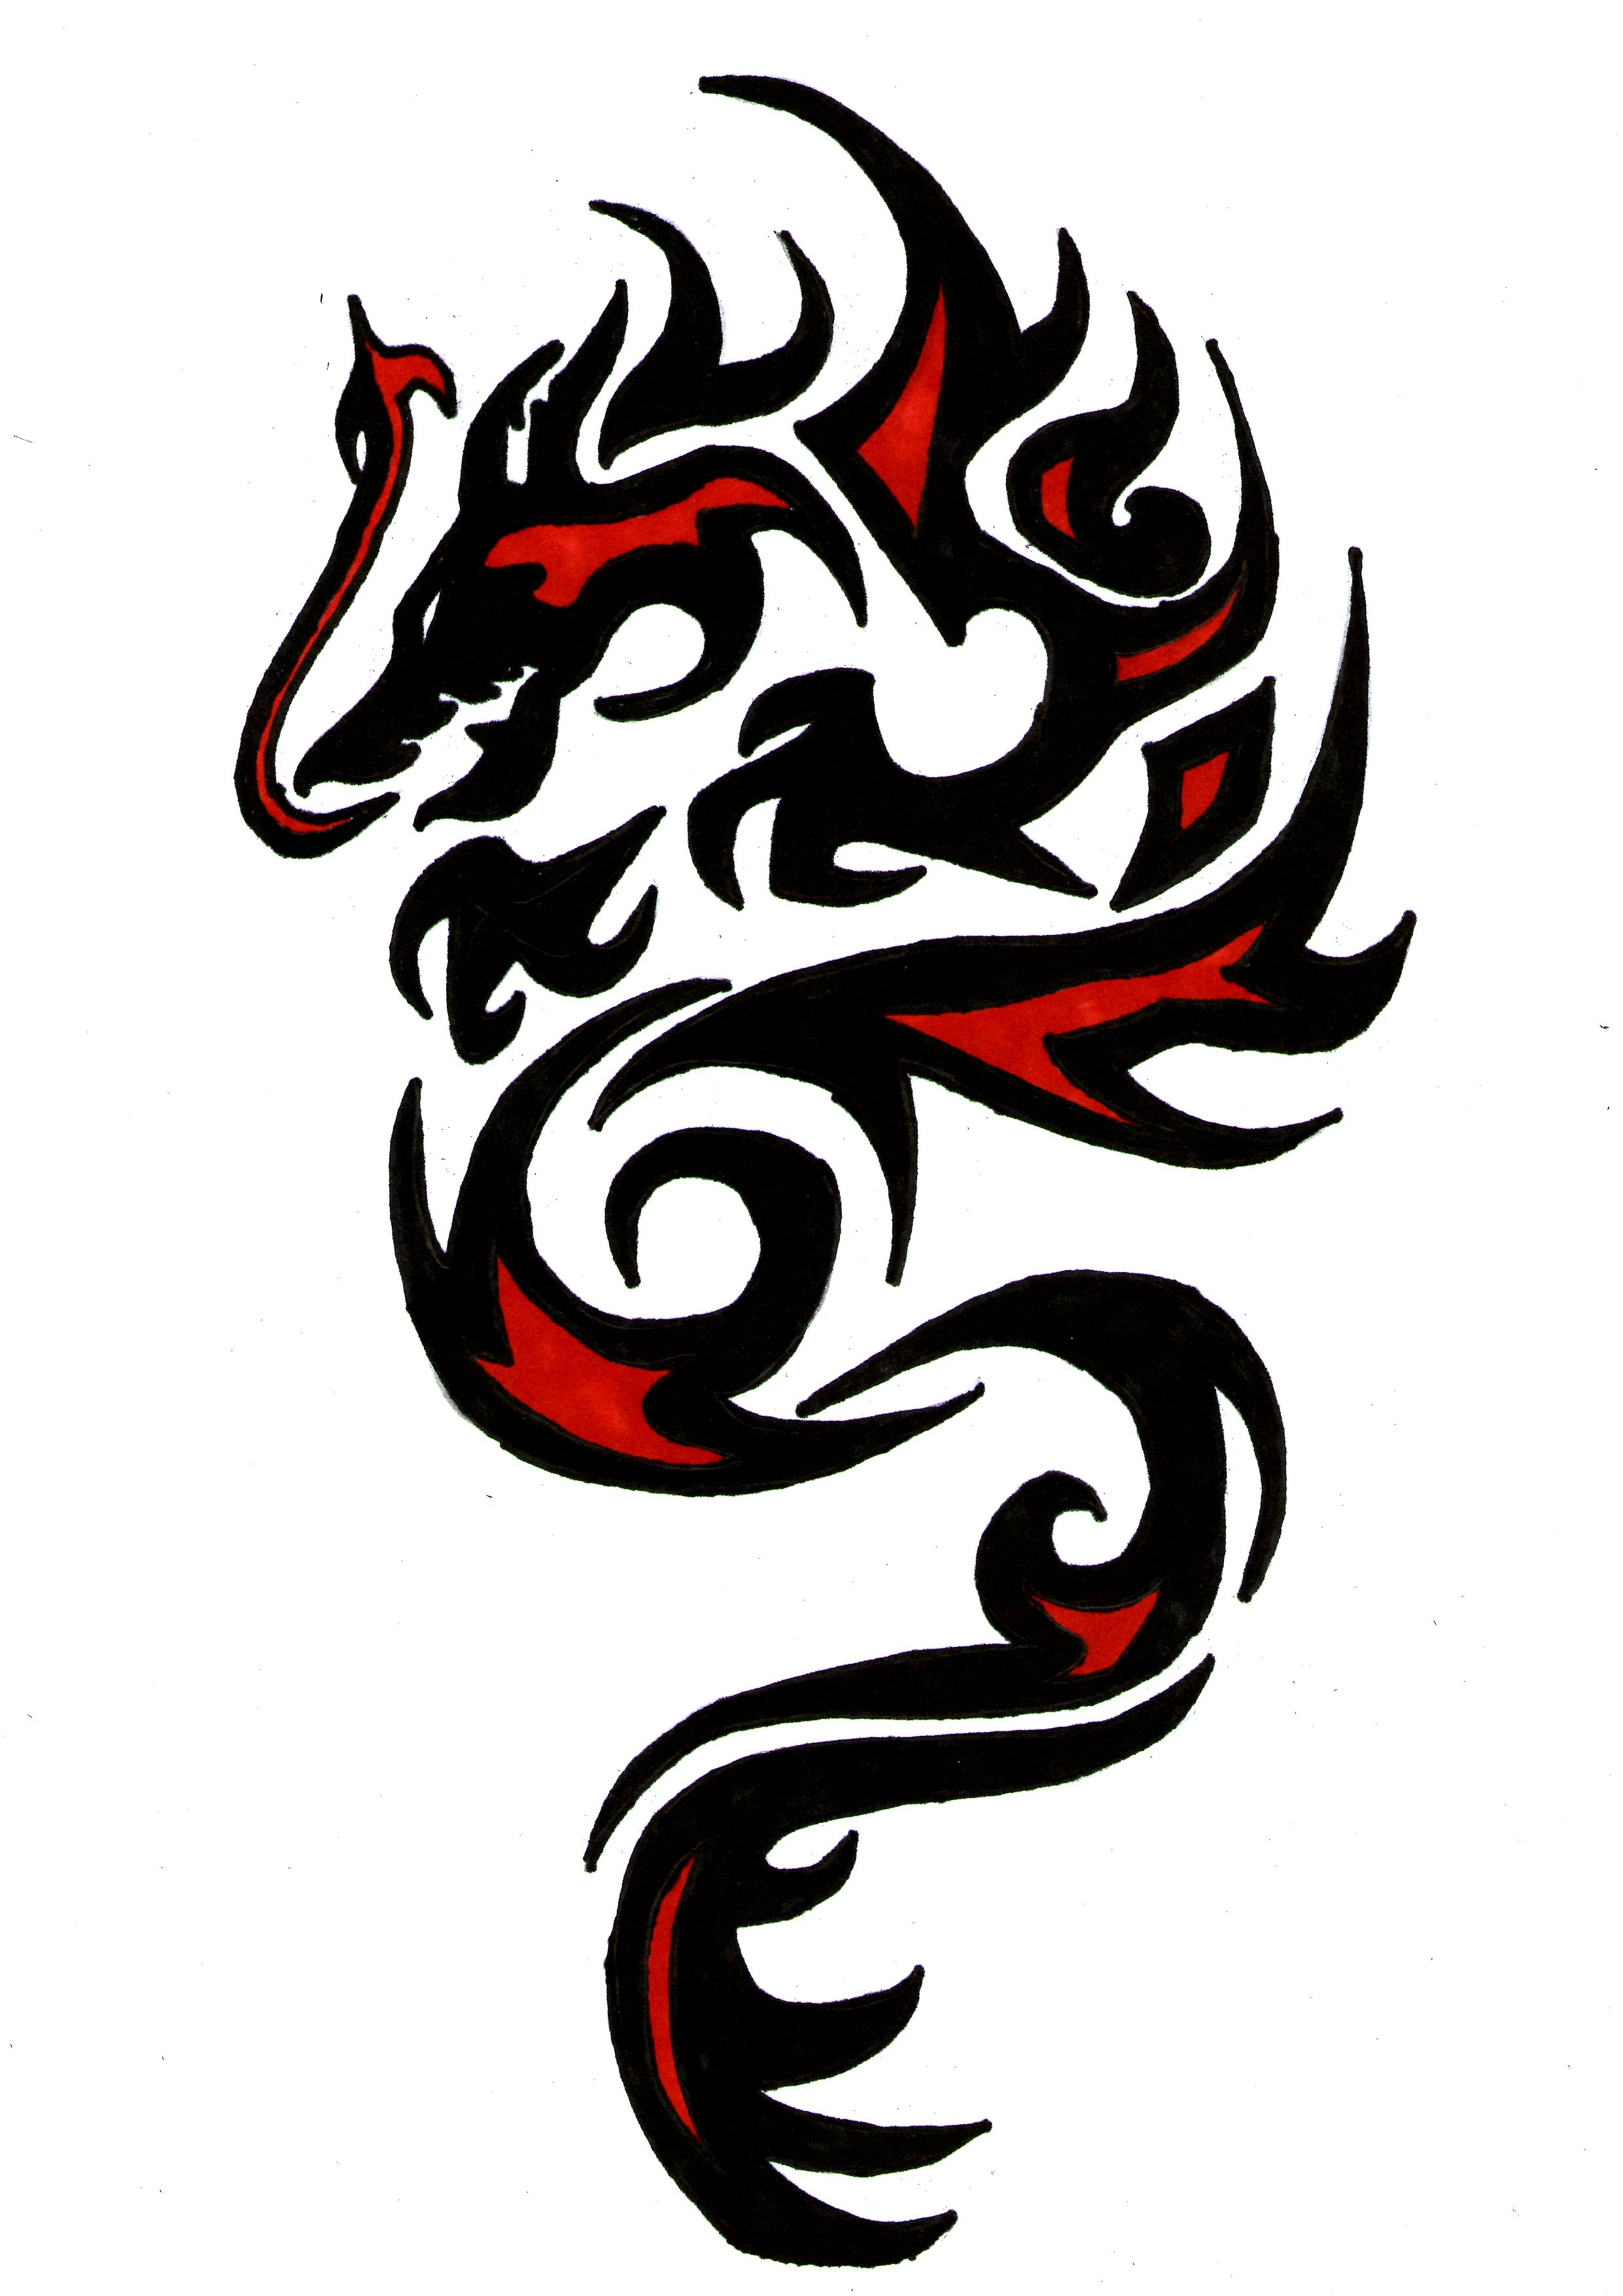 tribal-red-and-black-ink-dragon-tattoo-design